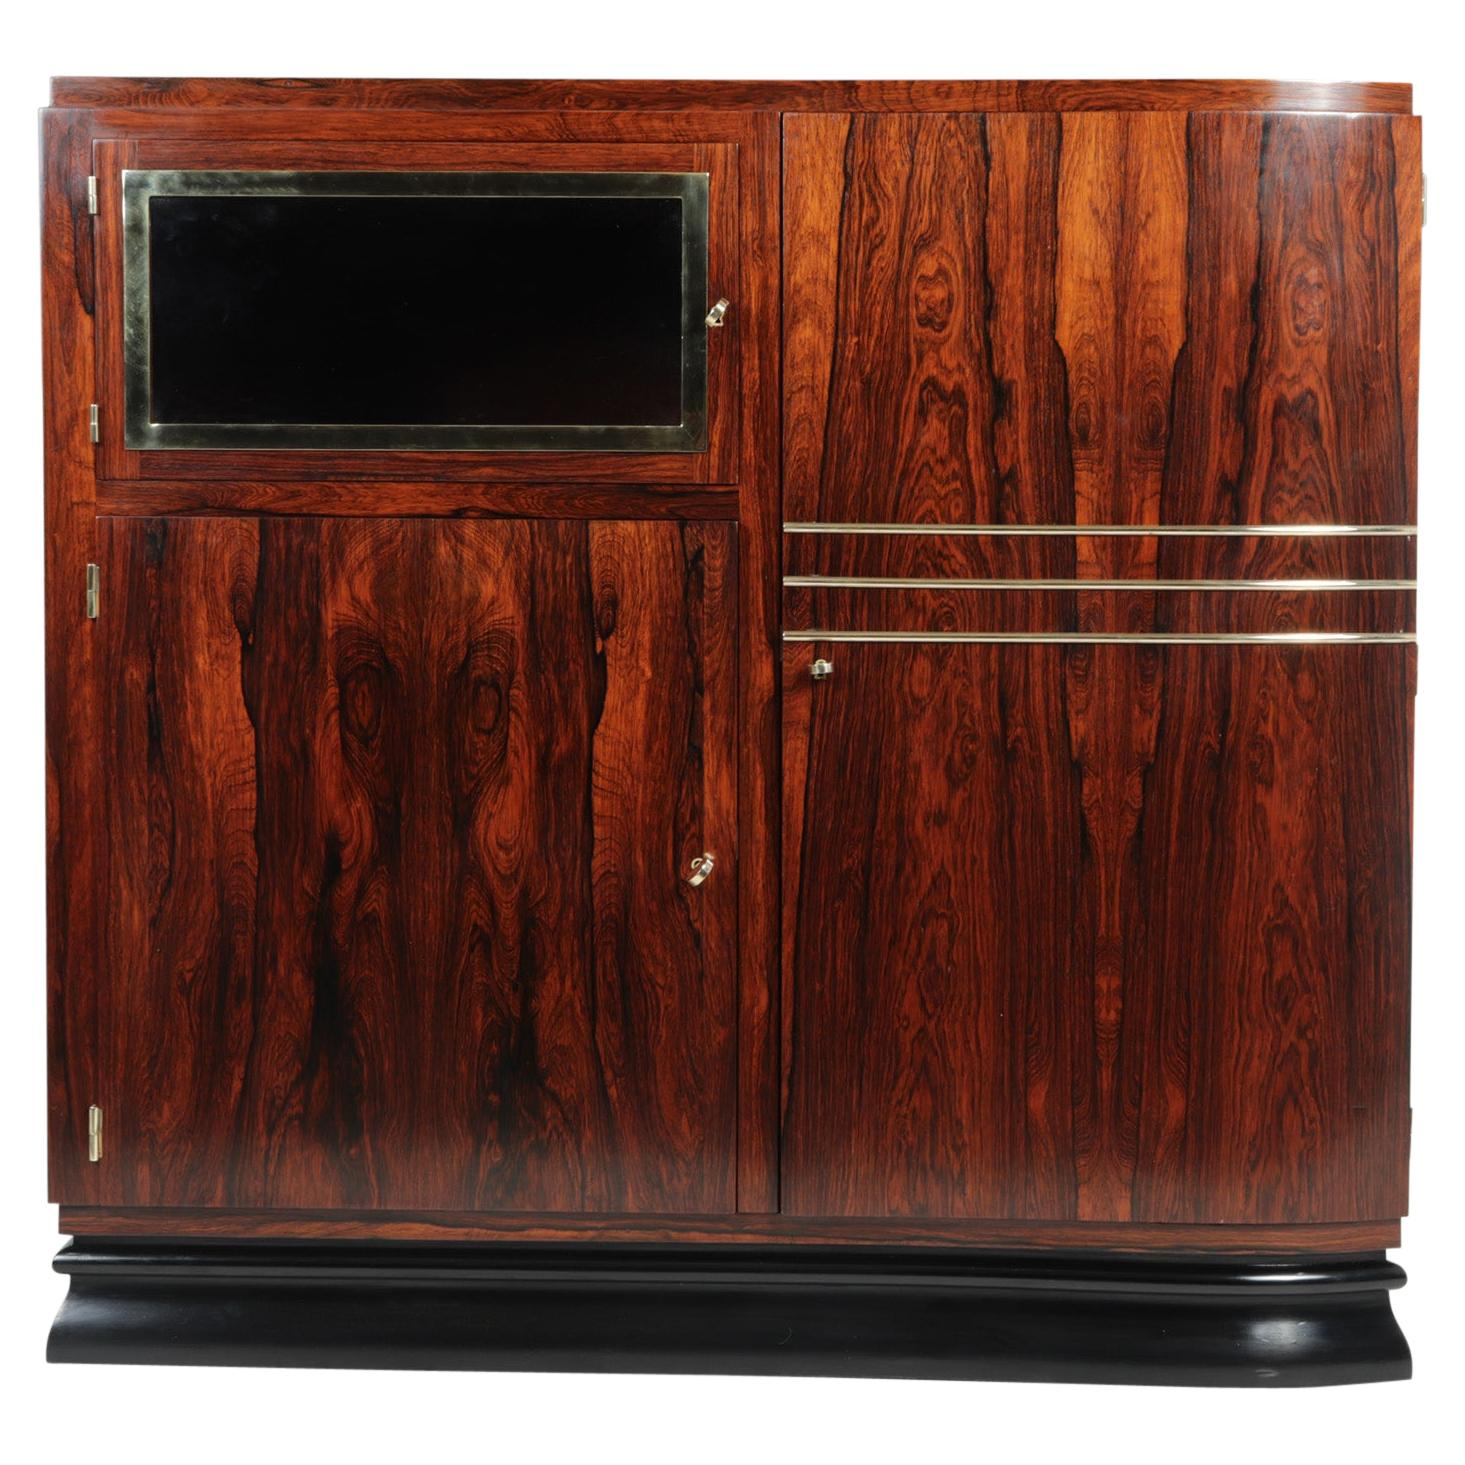 French Art Deco Rosewood Cabinet, c1925